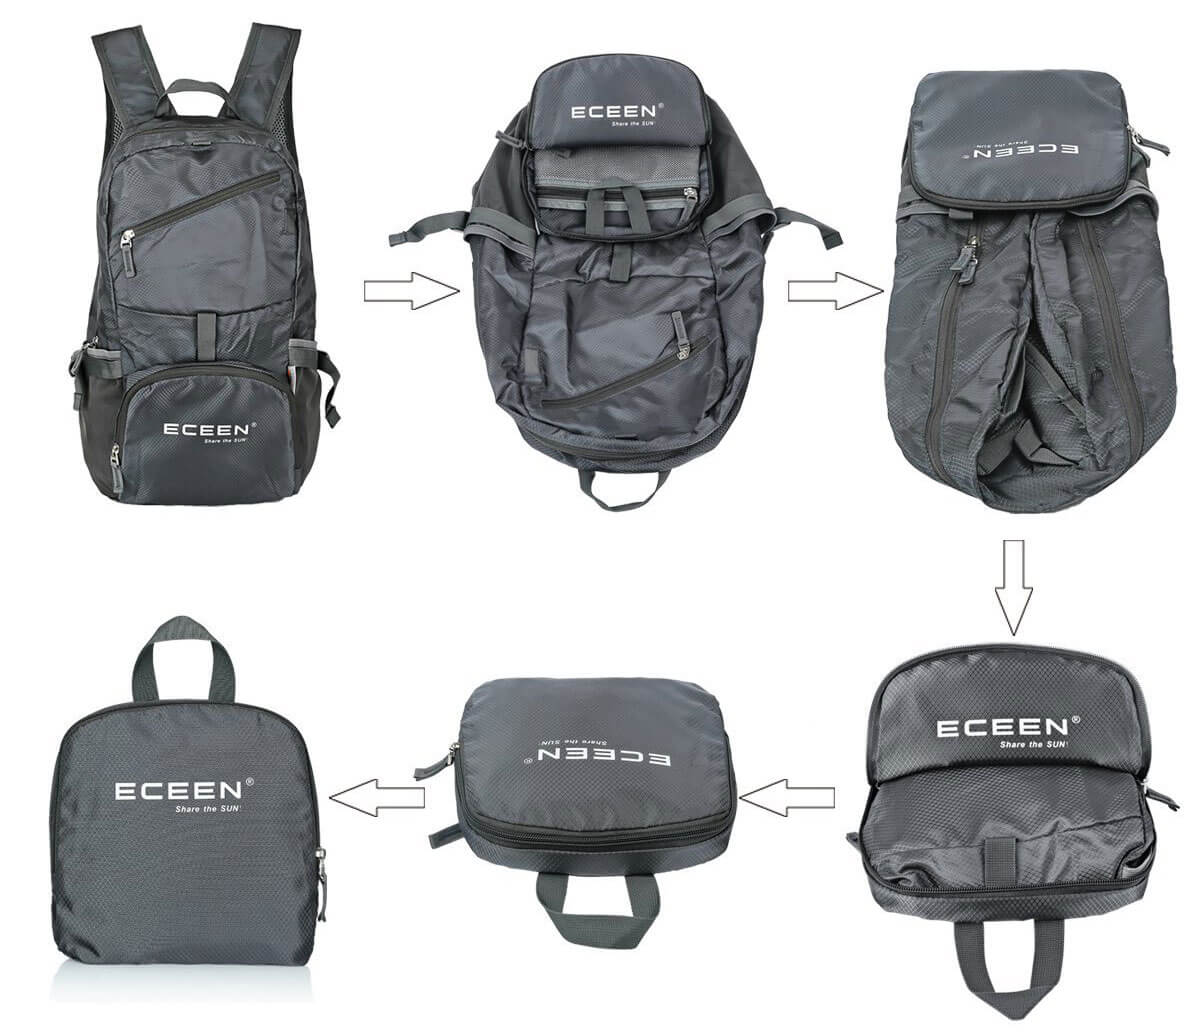 Solar Powered Hiking Backpack by Eceen Review